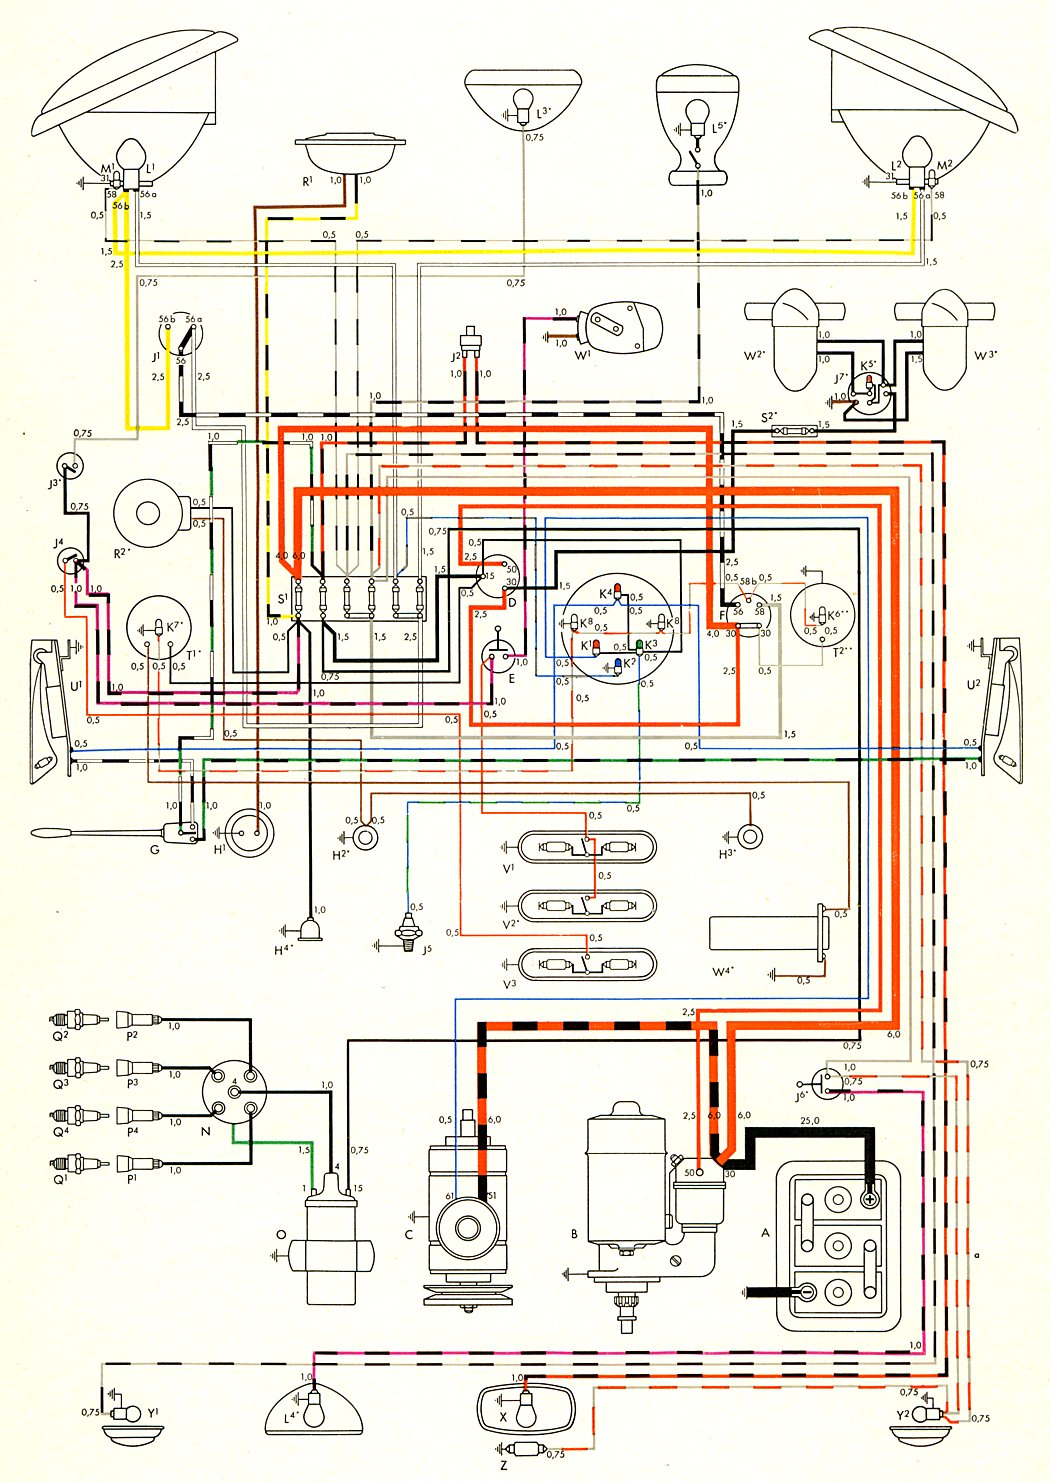 vw t4 wiring diagram   20 wiring diagram images